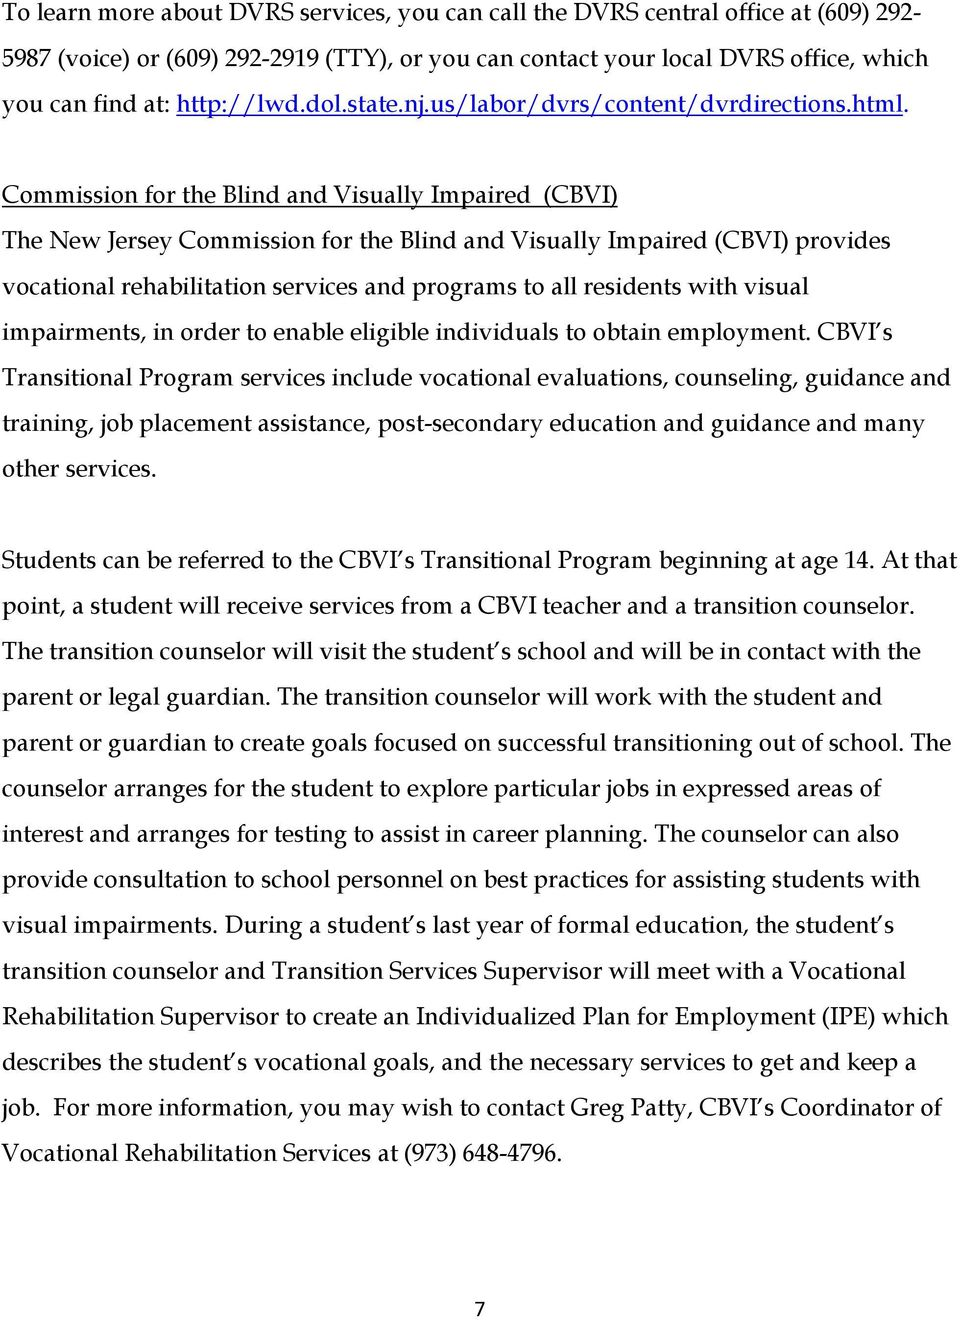 Commission for the Blind and Visually Impaired (CBVI) The New Jersey Commission for the Blind and Visually Impaired (CBVI) provides vocational rehabilitation services and programs to all residents